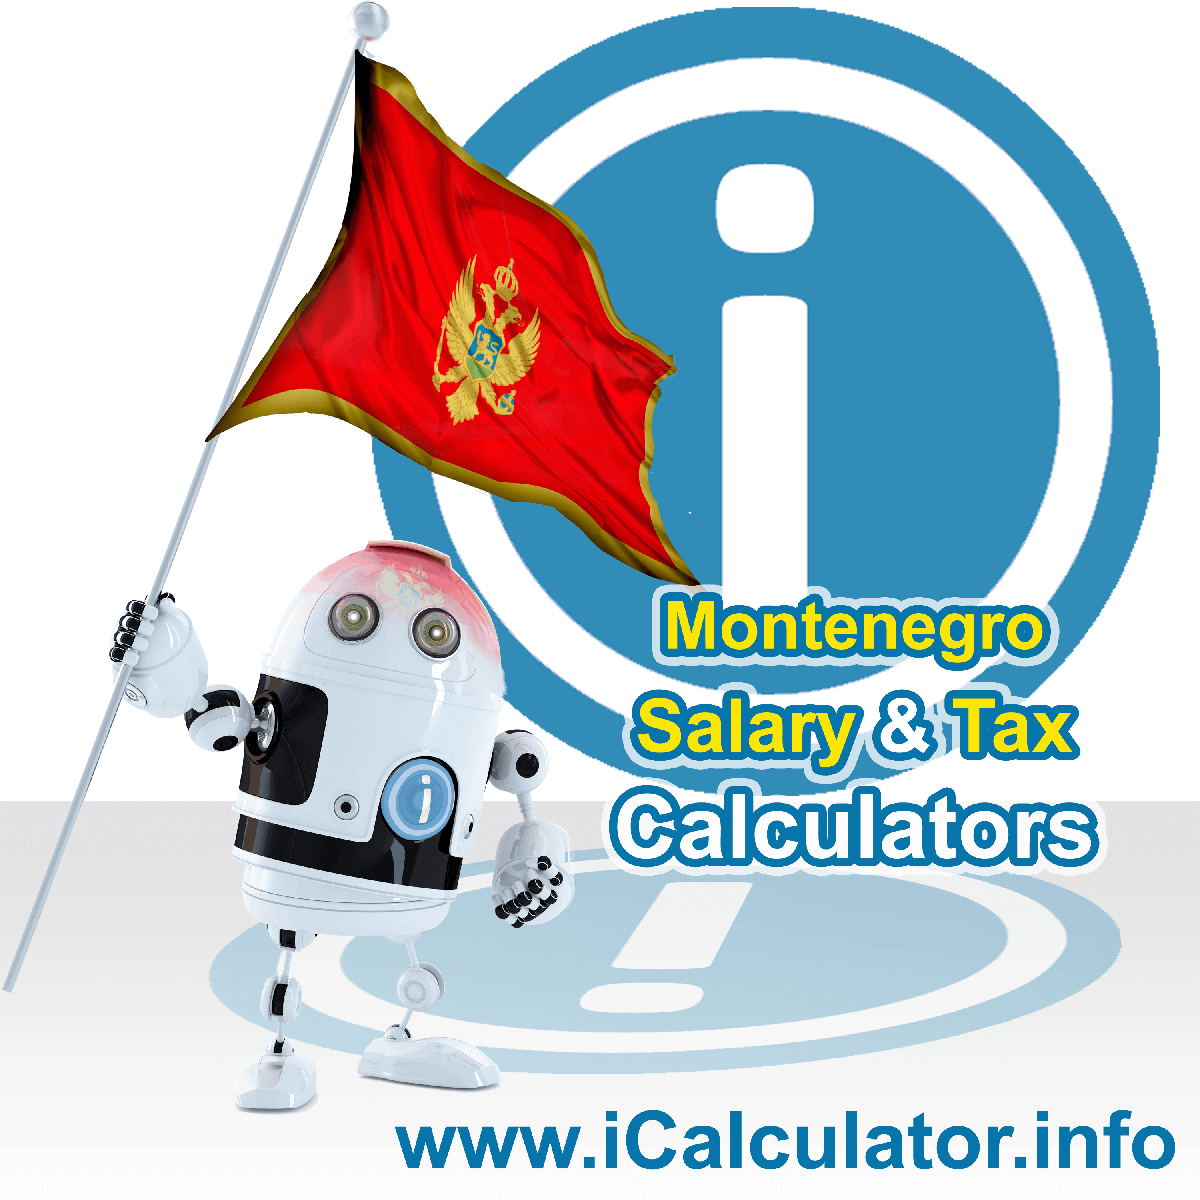 Montenegro Wage Calculator. This image shows the Montenegro flag and information relating to the tax formula for the Montenegro Tax Calculator